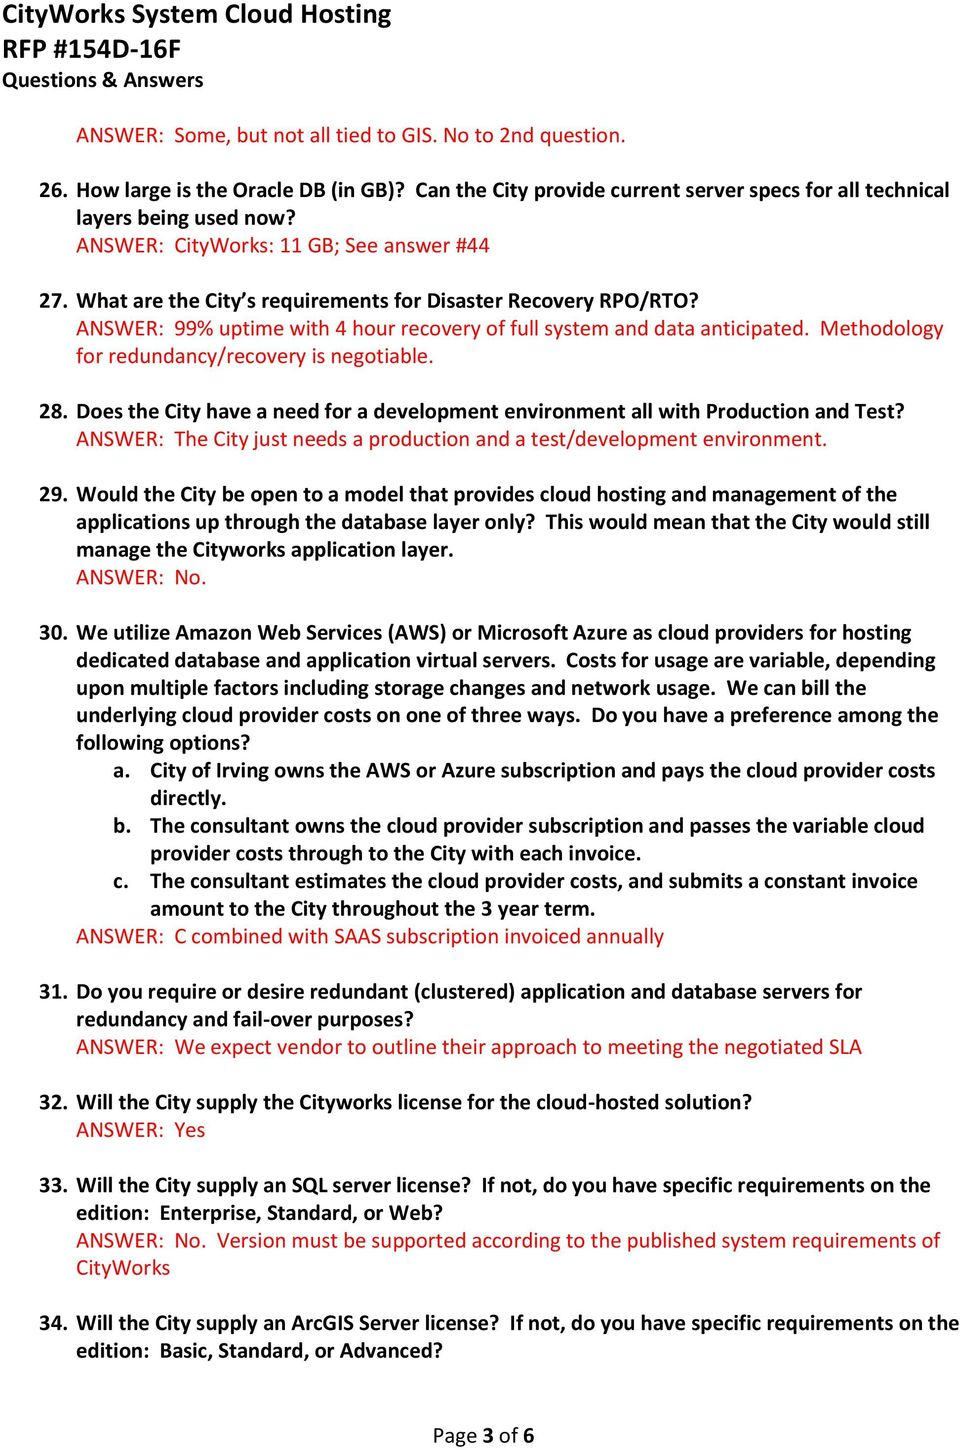 Addendum 1 RFP #154D-16F CityWorks System Cloud Hosting - PDF